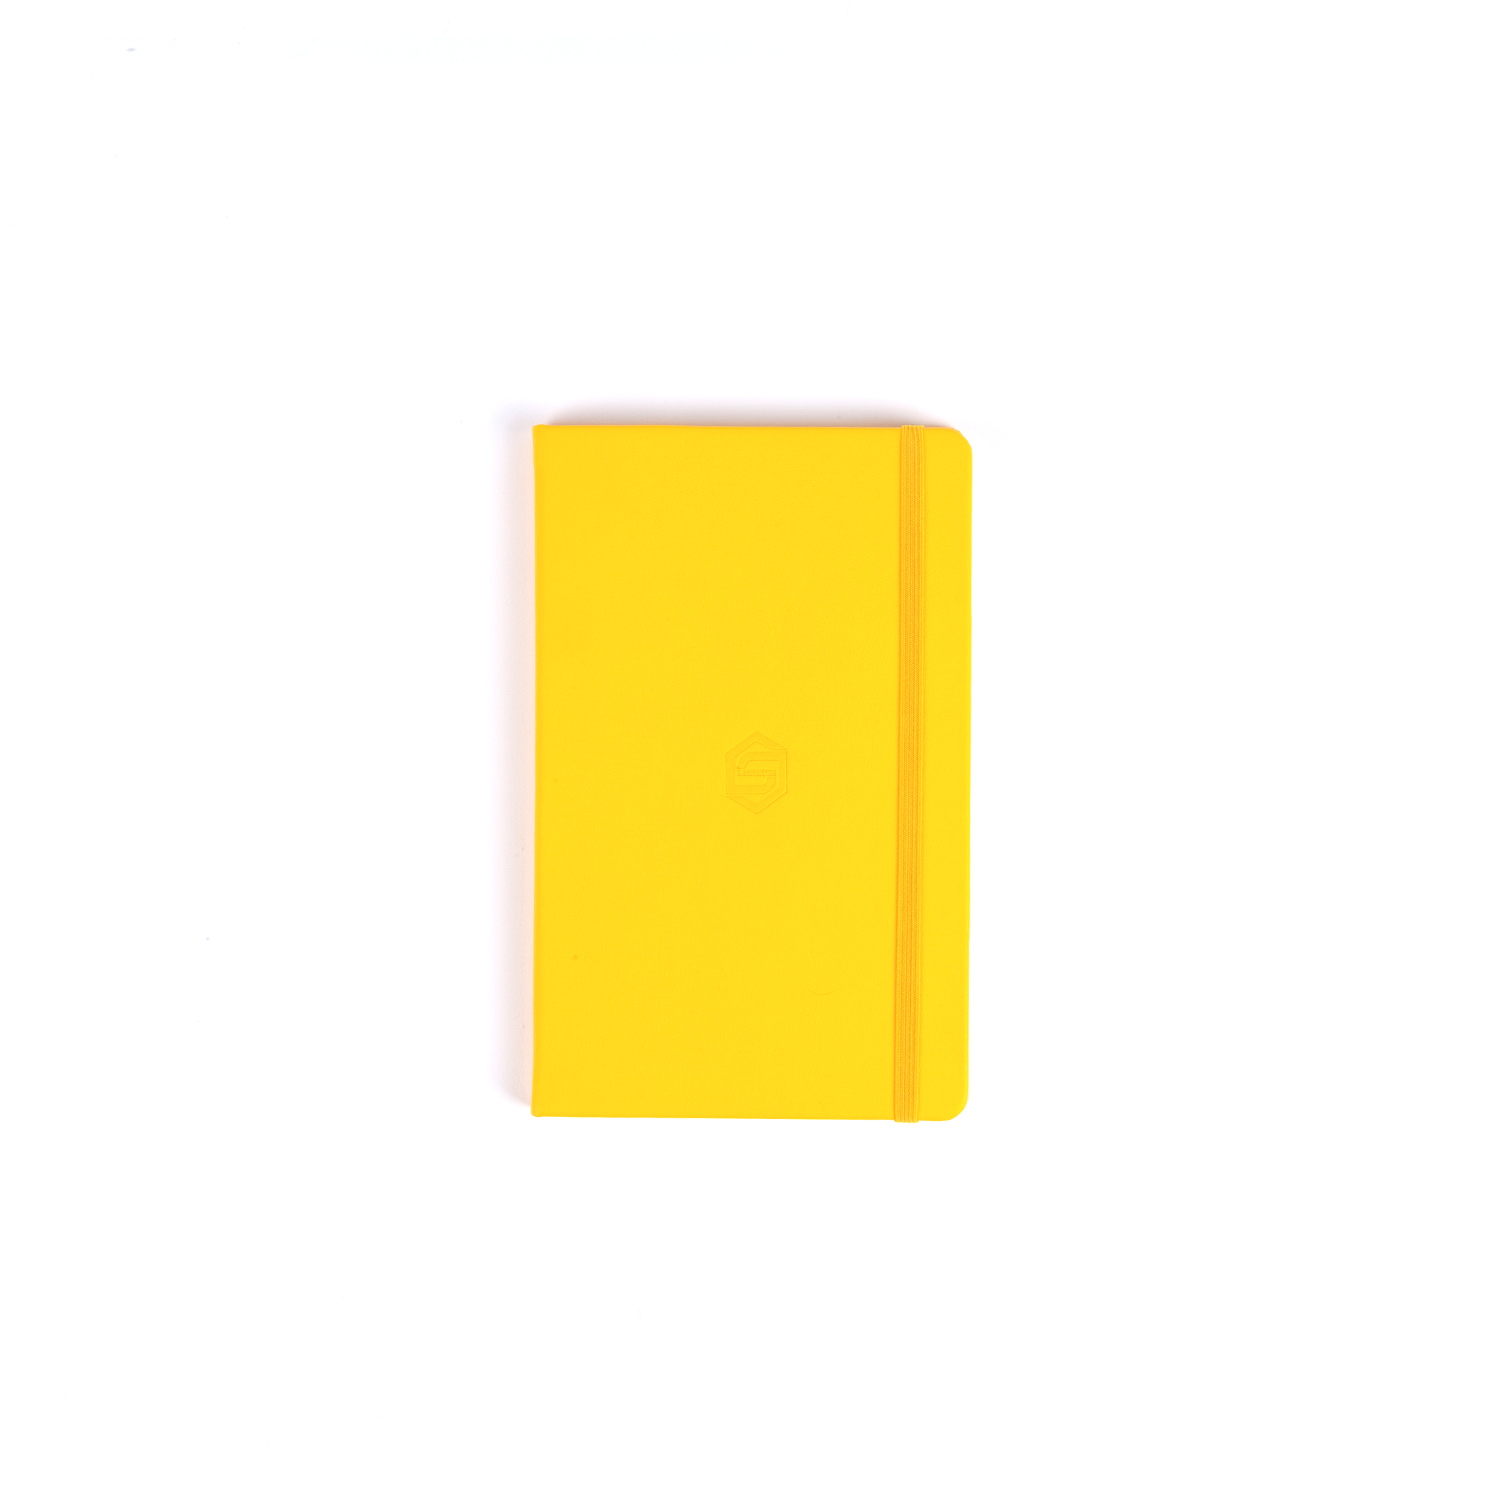 [YN] SECHSKIES HARD COVER NOTEBOOK